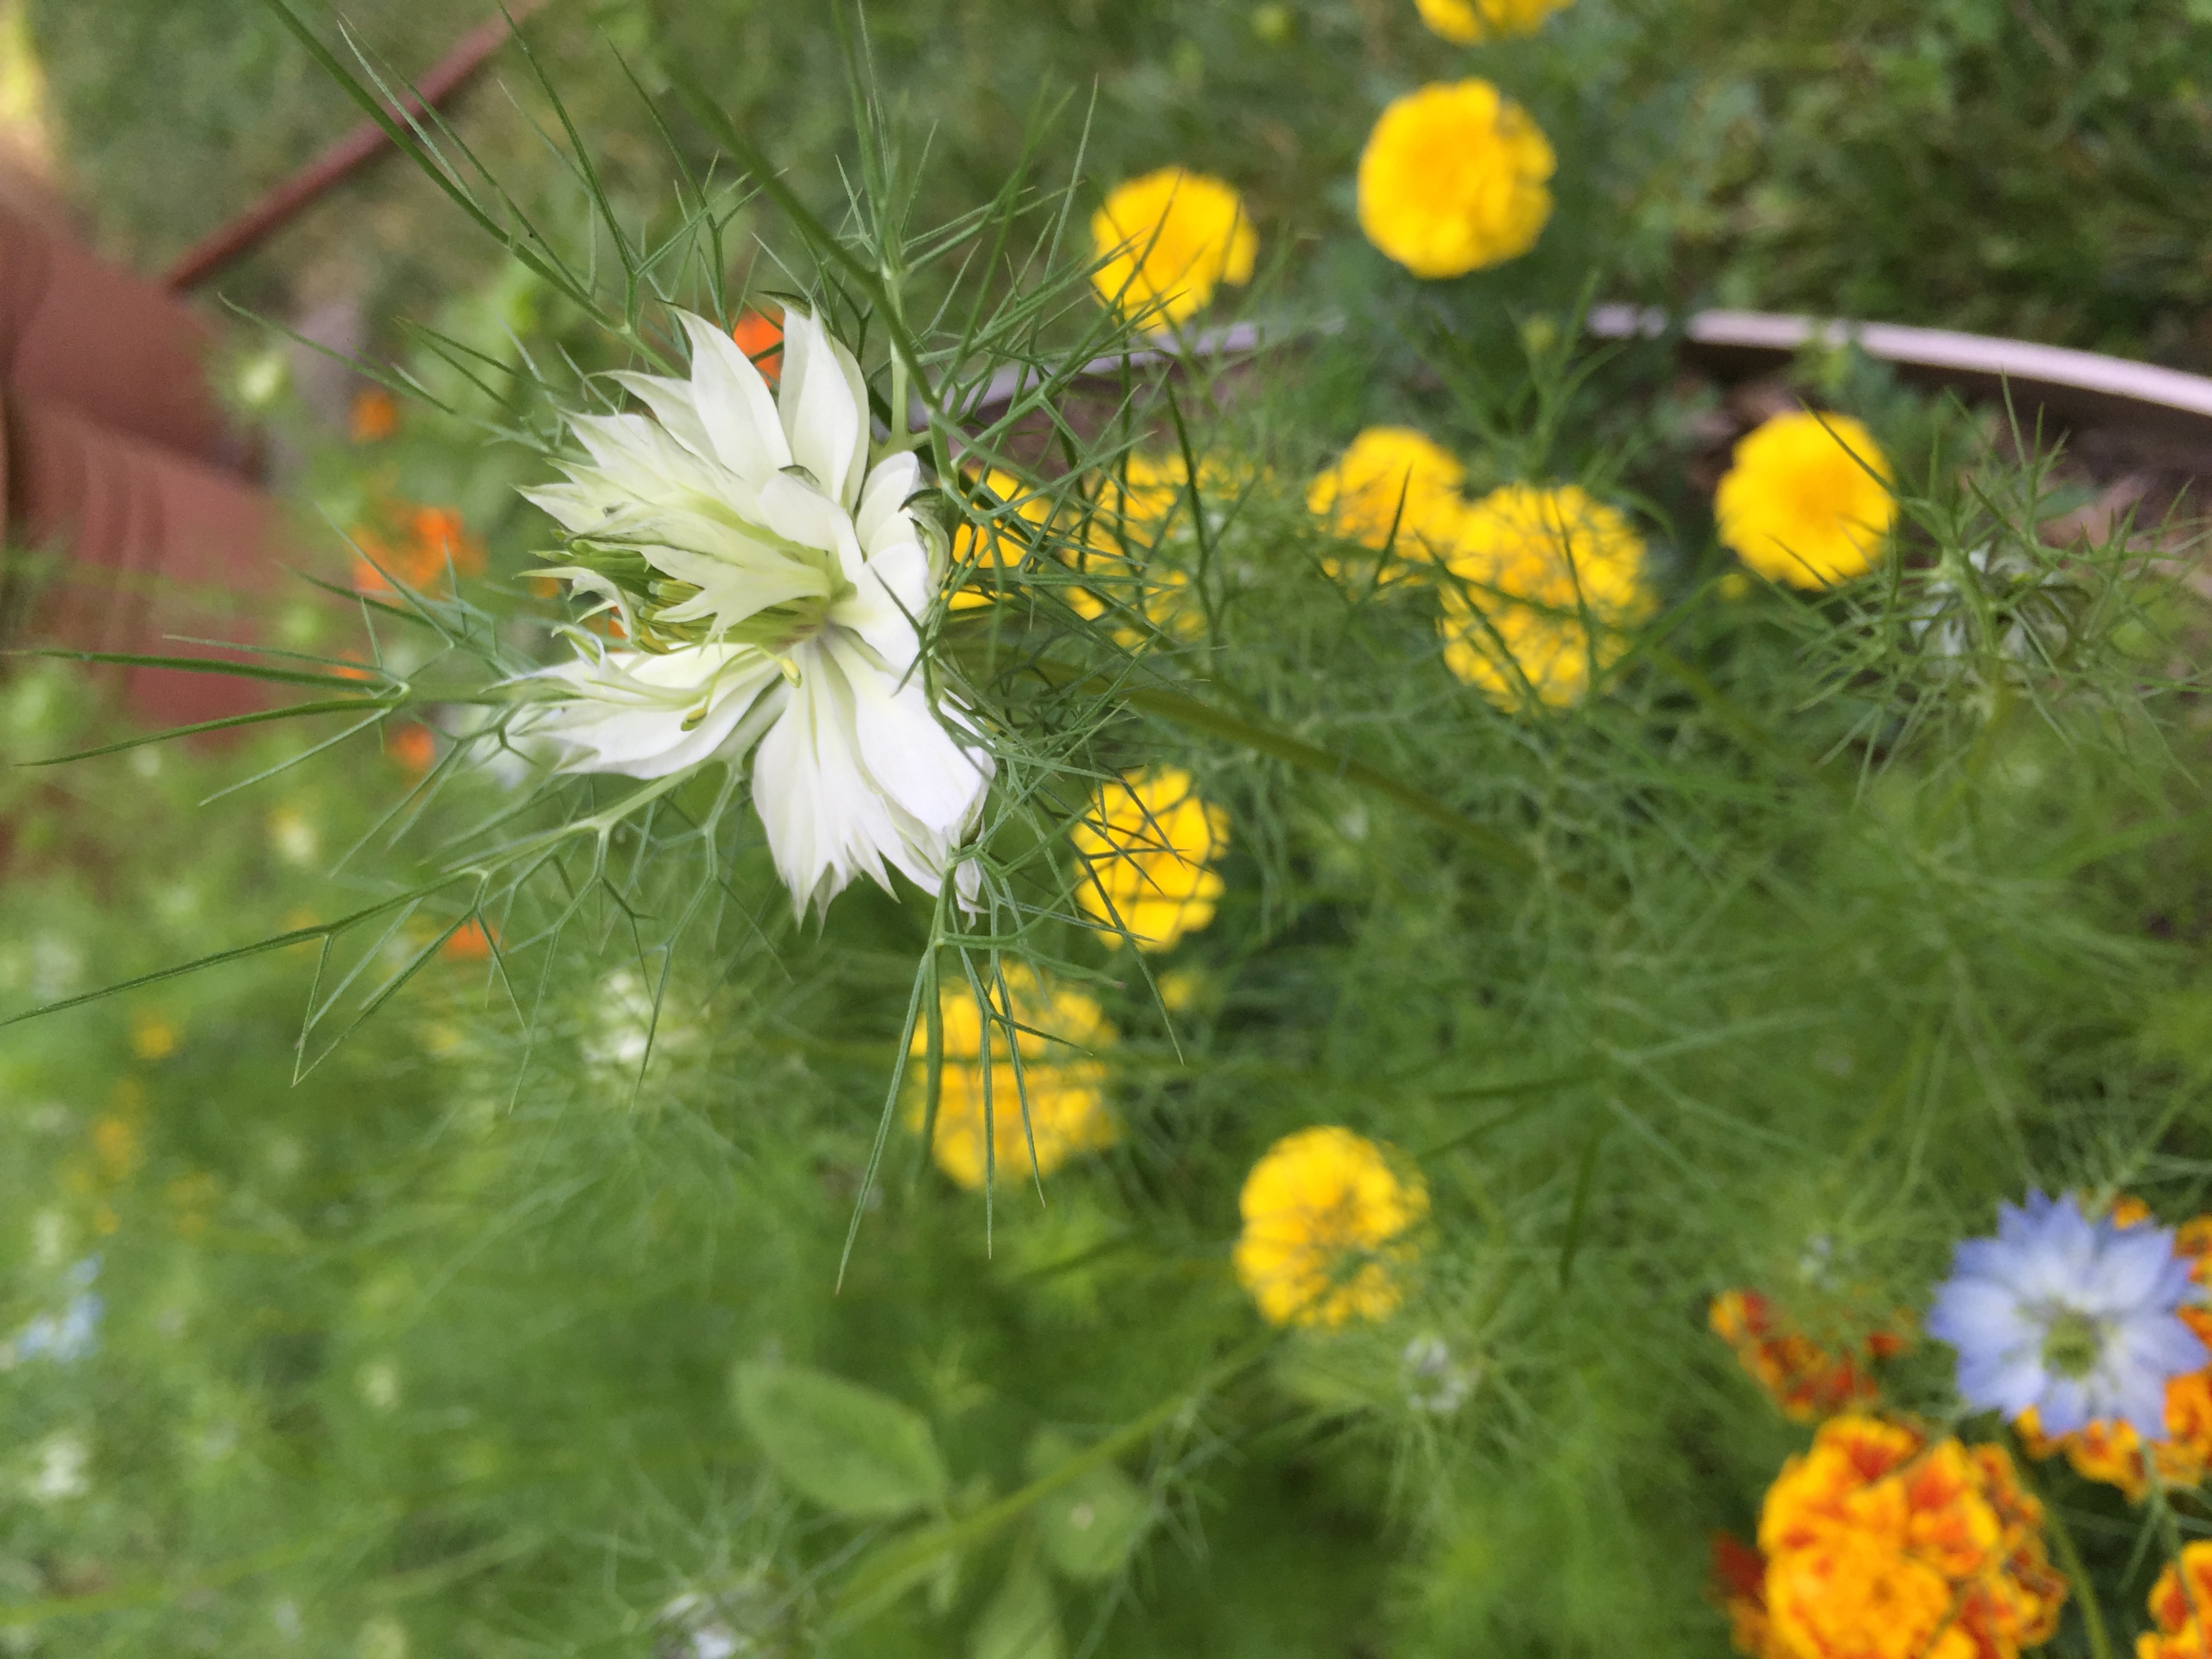 What Is This Flower Flowers Growing Vegetable How To Garden